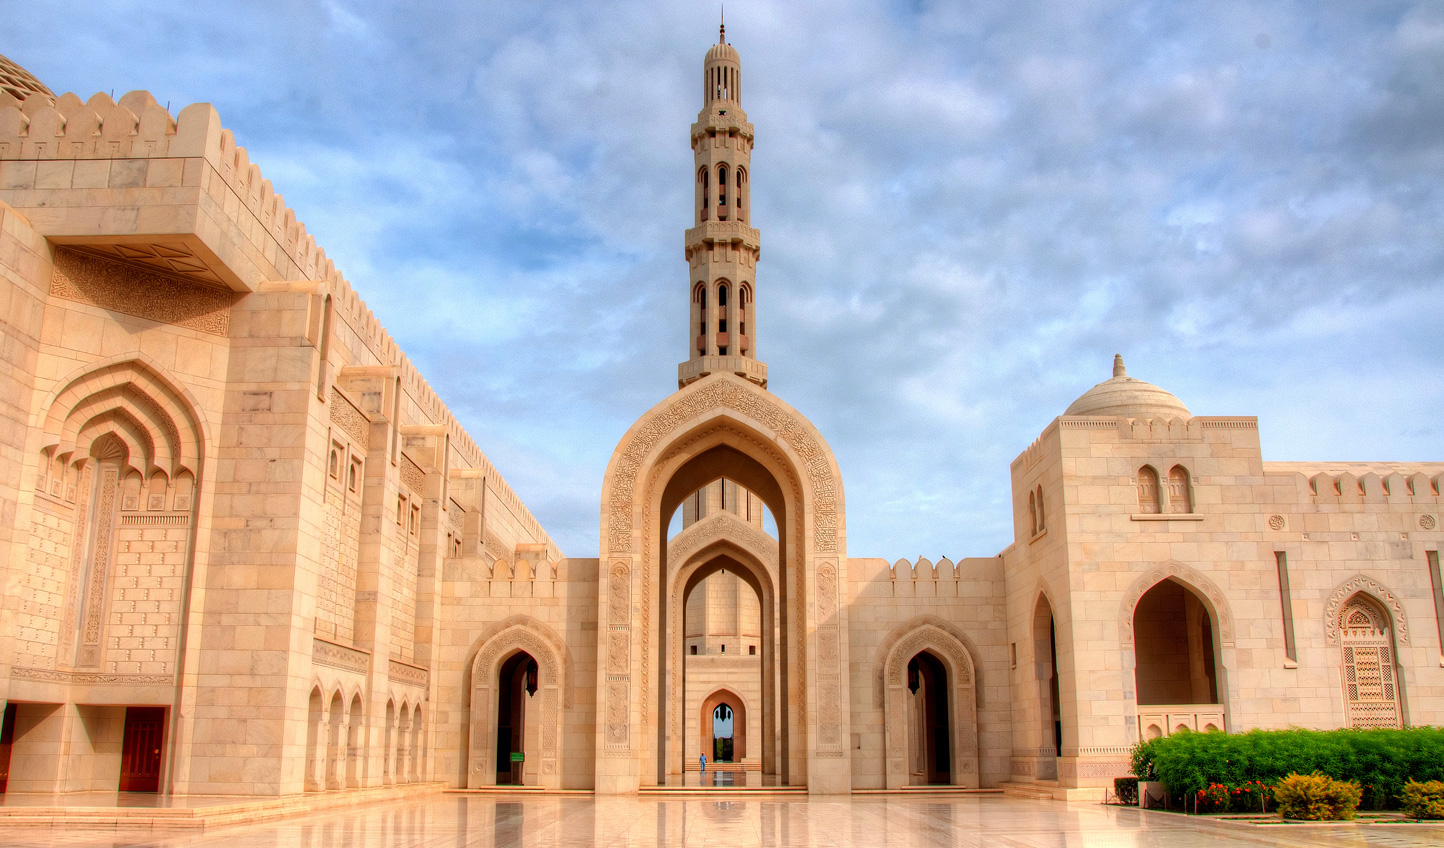 Visit the architecturally stunning Sultan Qaboos Mosque